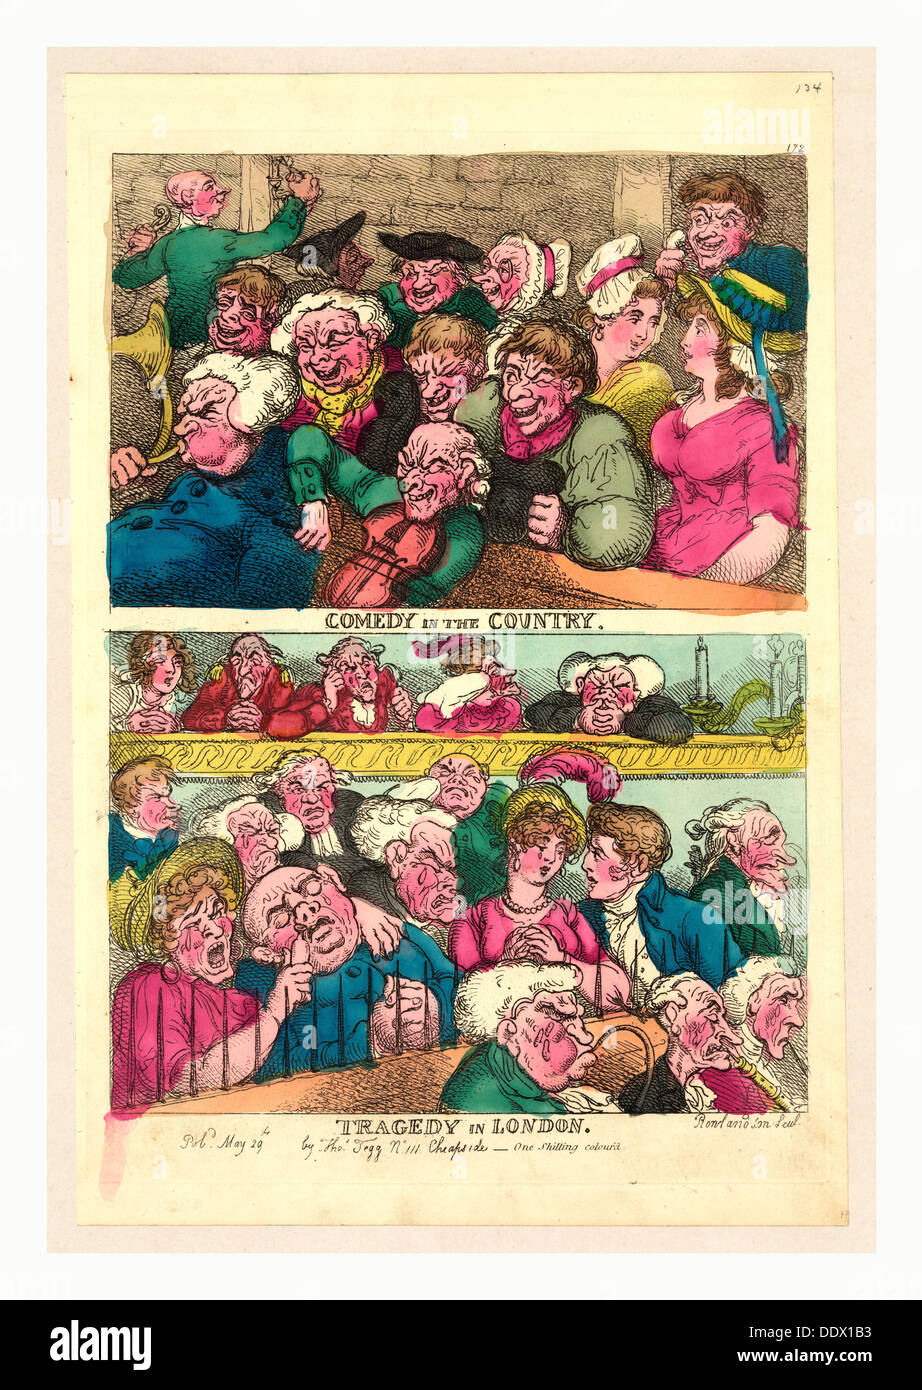 Comedy in the country. Tragedy in London, Rowlandson, Thomas, 1756-1827, engraving 1807, two designs on one plate - Stock Image